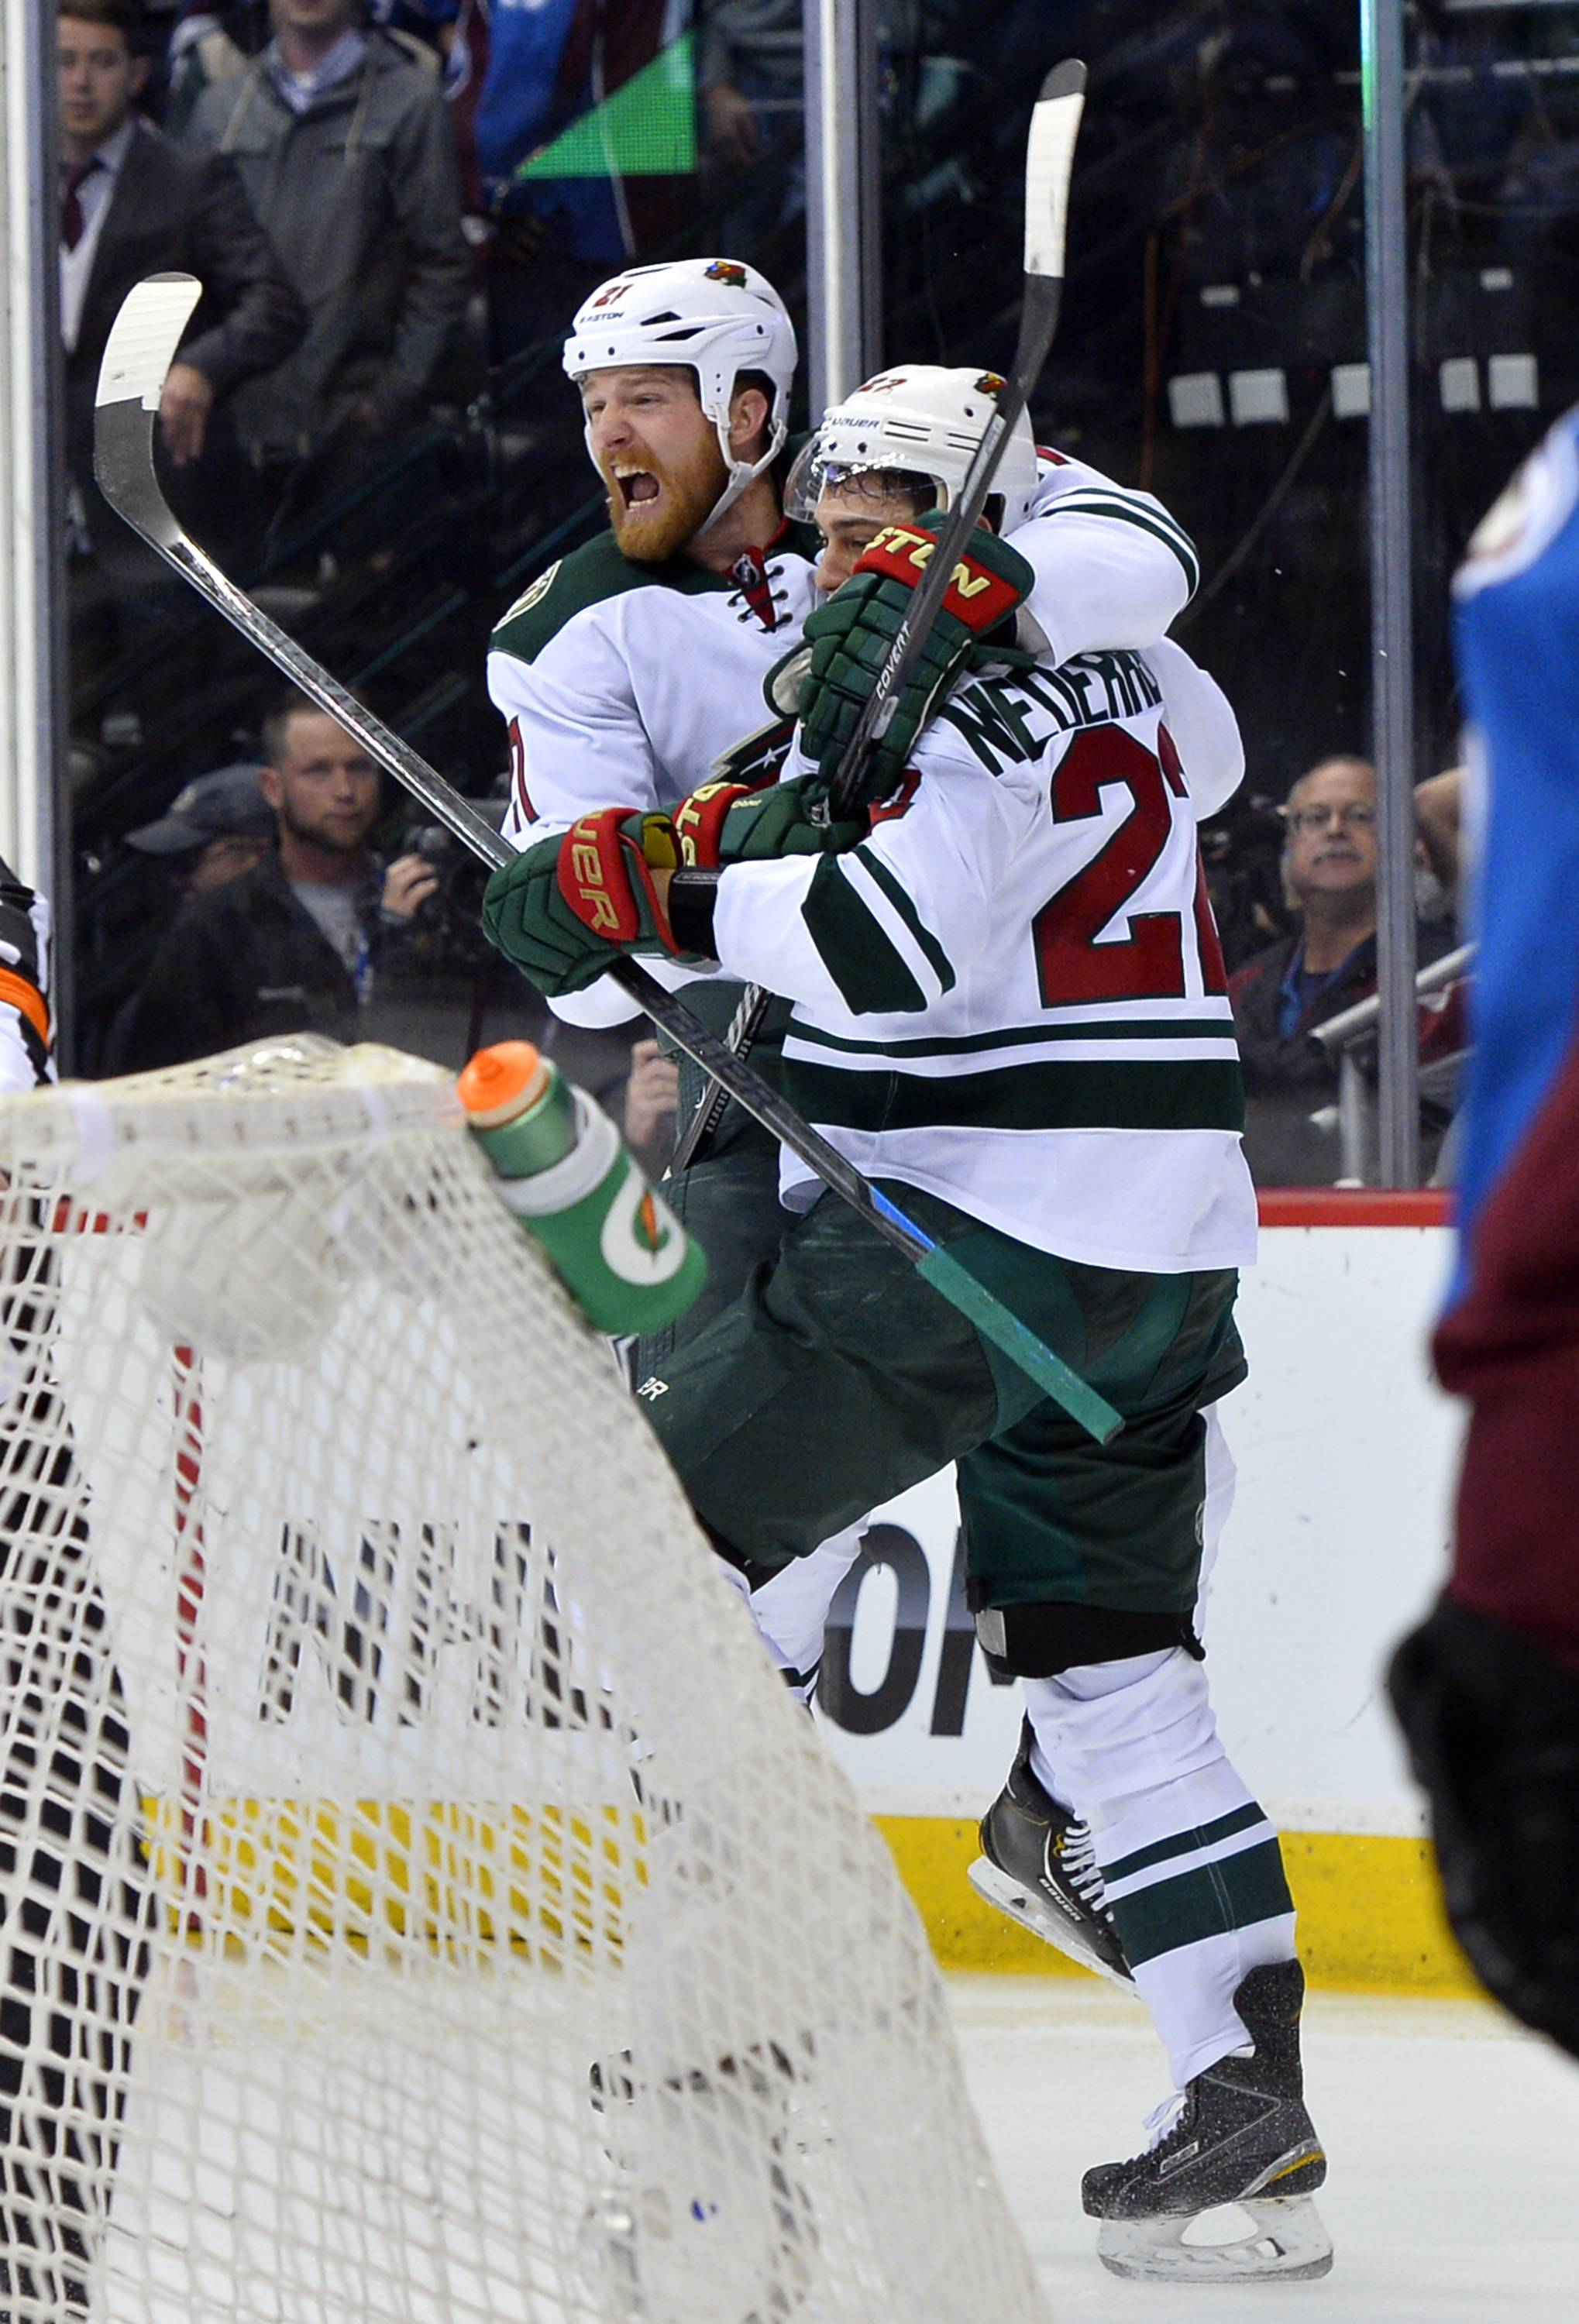 Minnesota's Nino Niederreiter celebrates his game-winning, Game 7 overtime goal against the Avalanche and now it's on to a second-round matching with the Blackhawks that starts tonight.